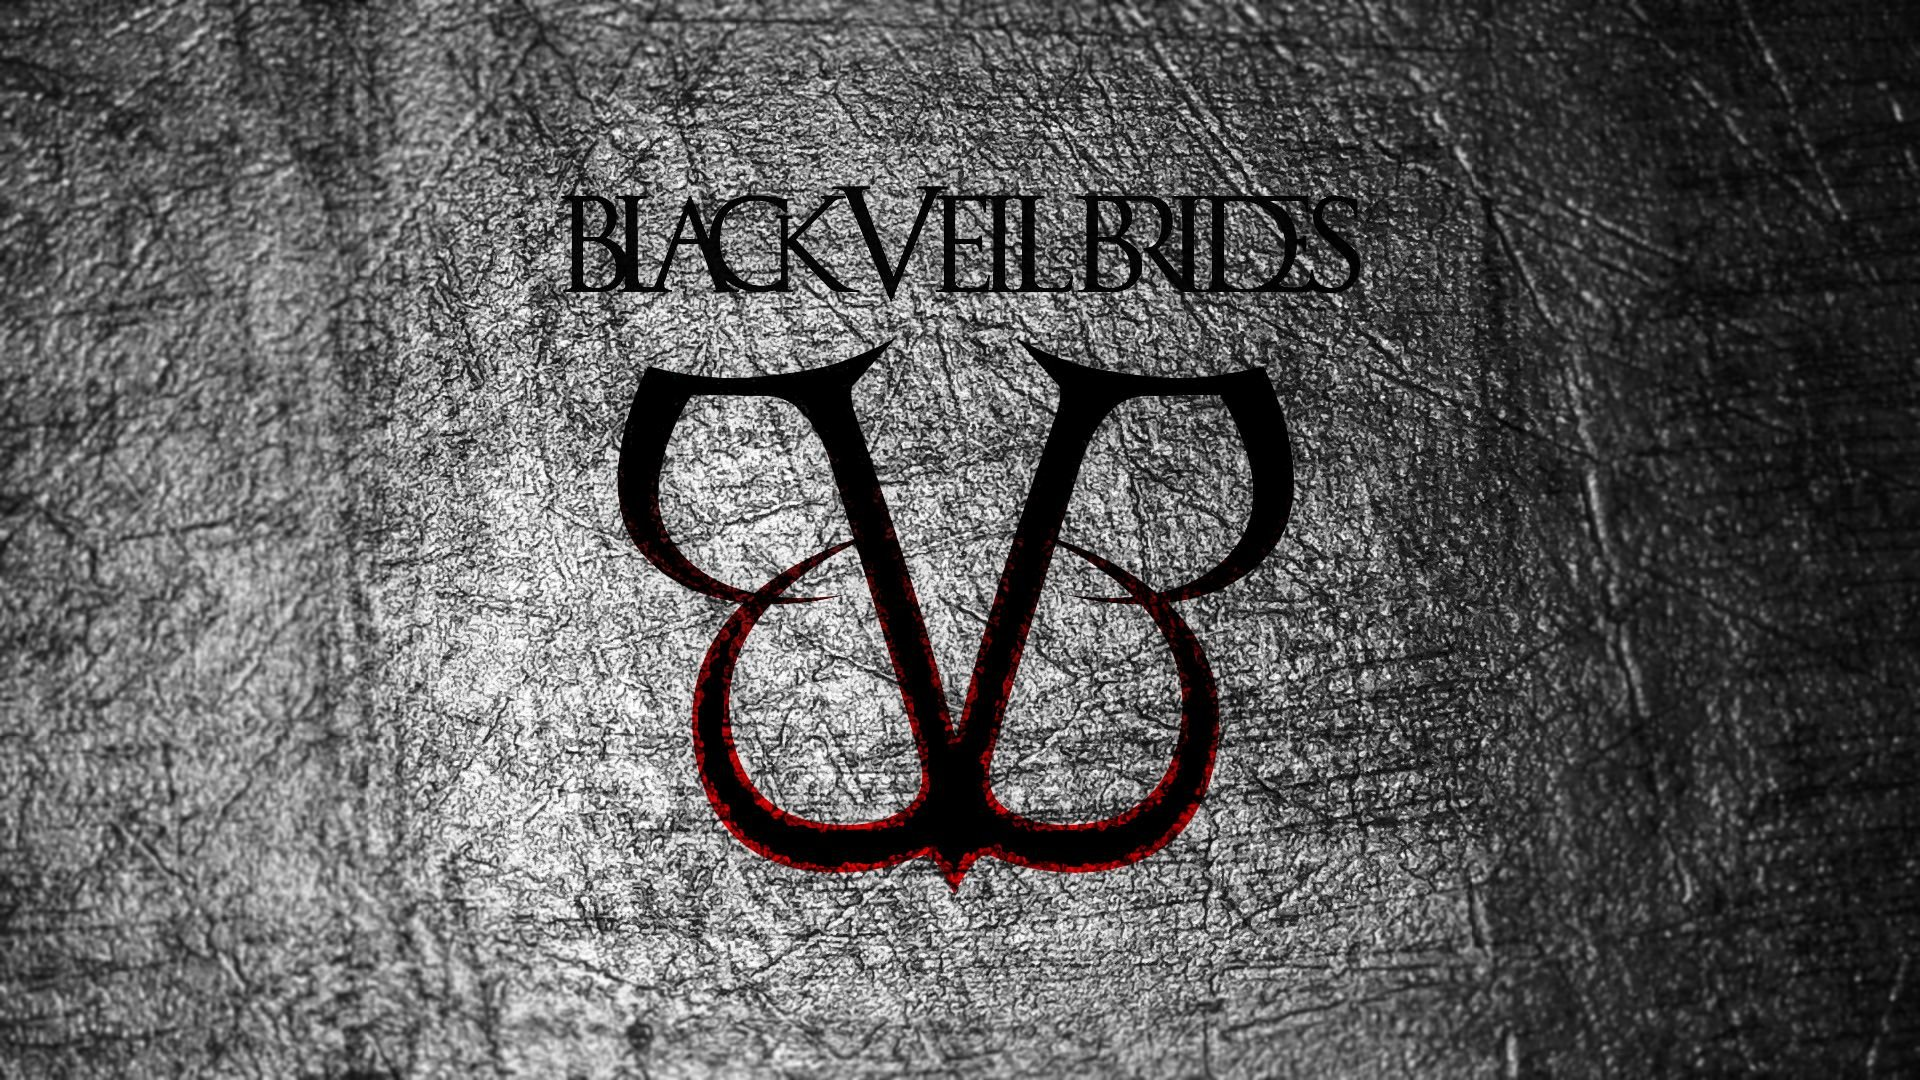 Awesome Black Veil Brides Free Wallpaper Id 436745 For Full Hd 1080p